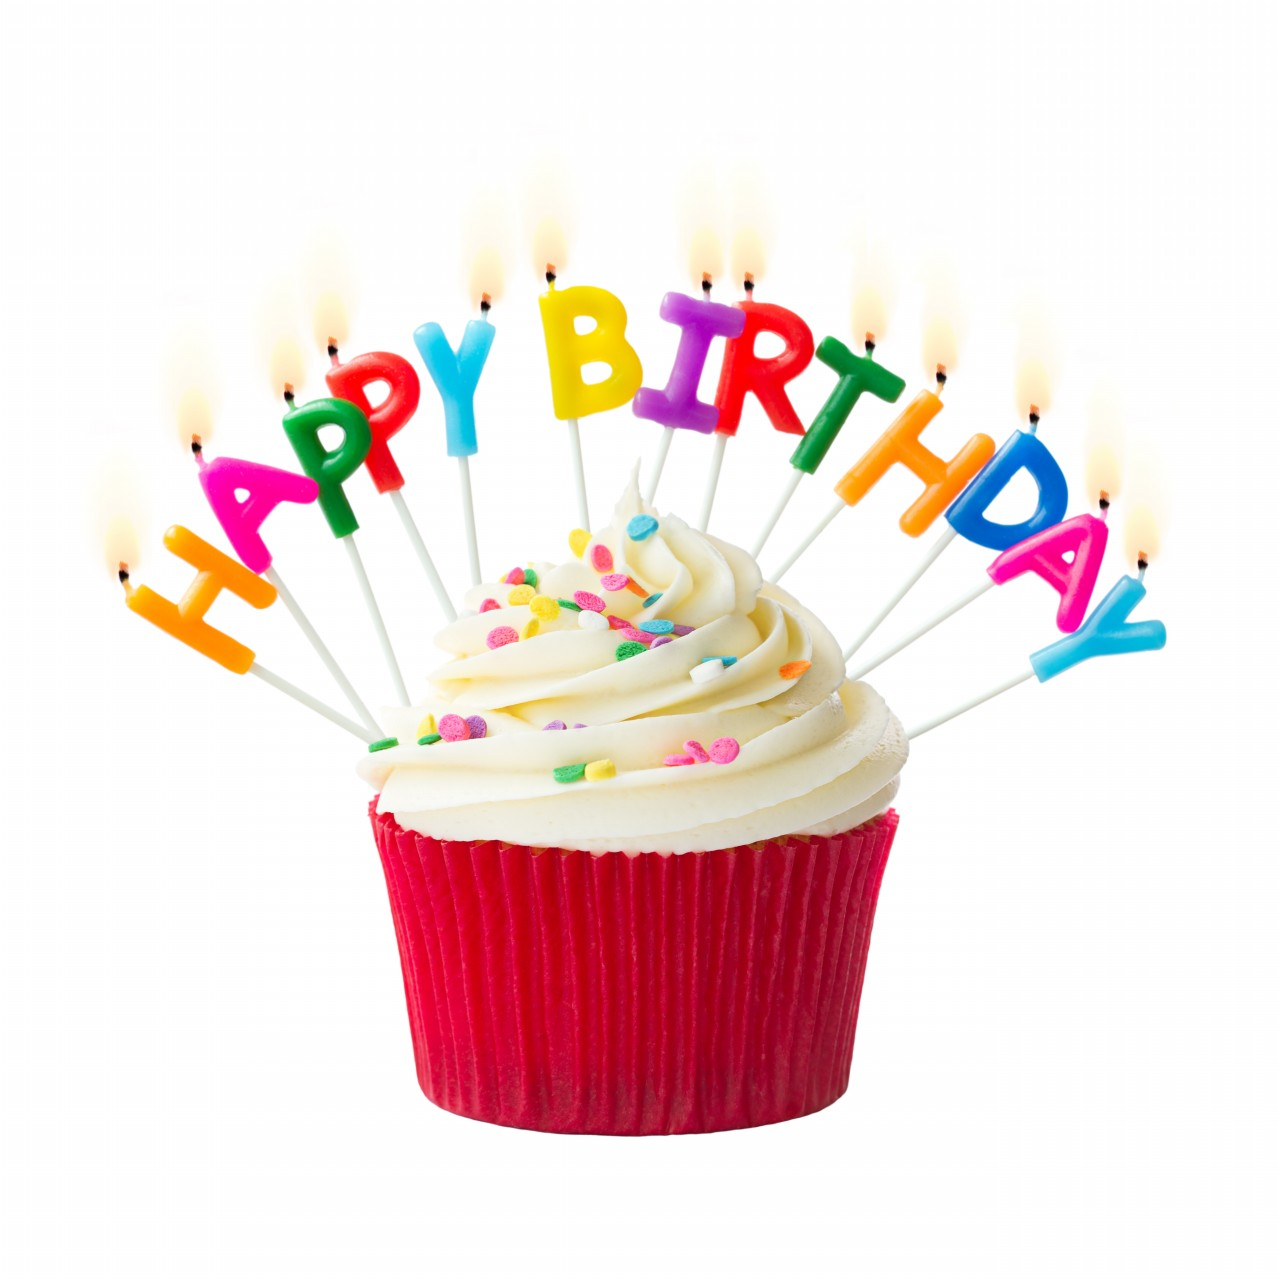 email sign up for free birthday stuff ; happy-birthday-cupcakes-with-candles-1